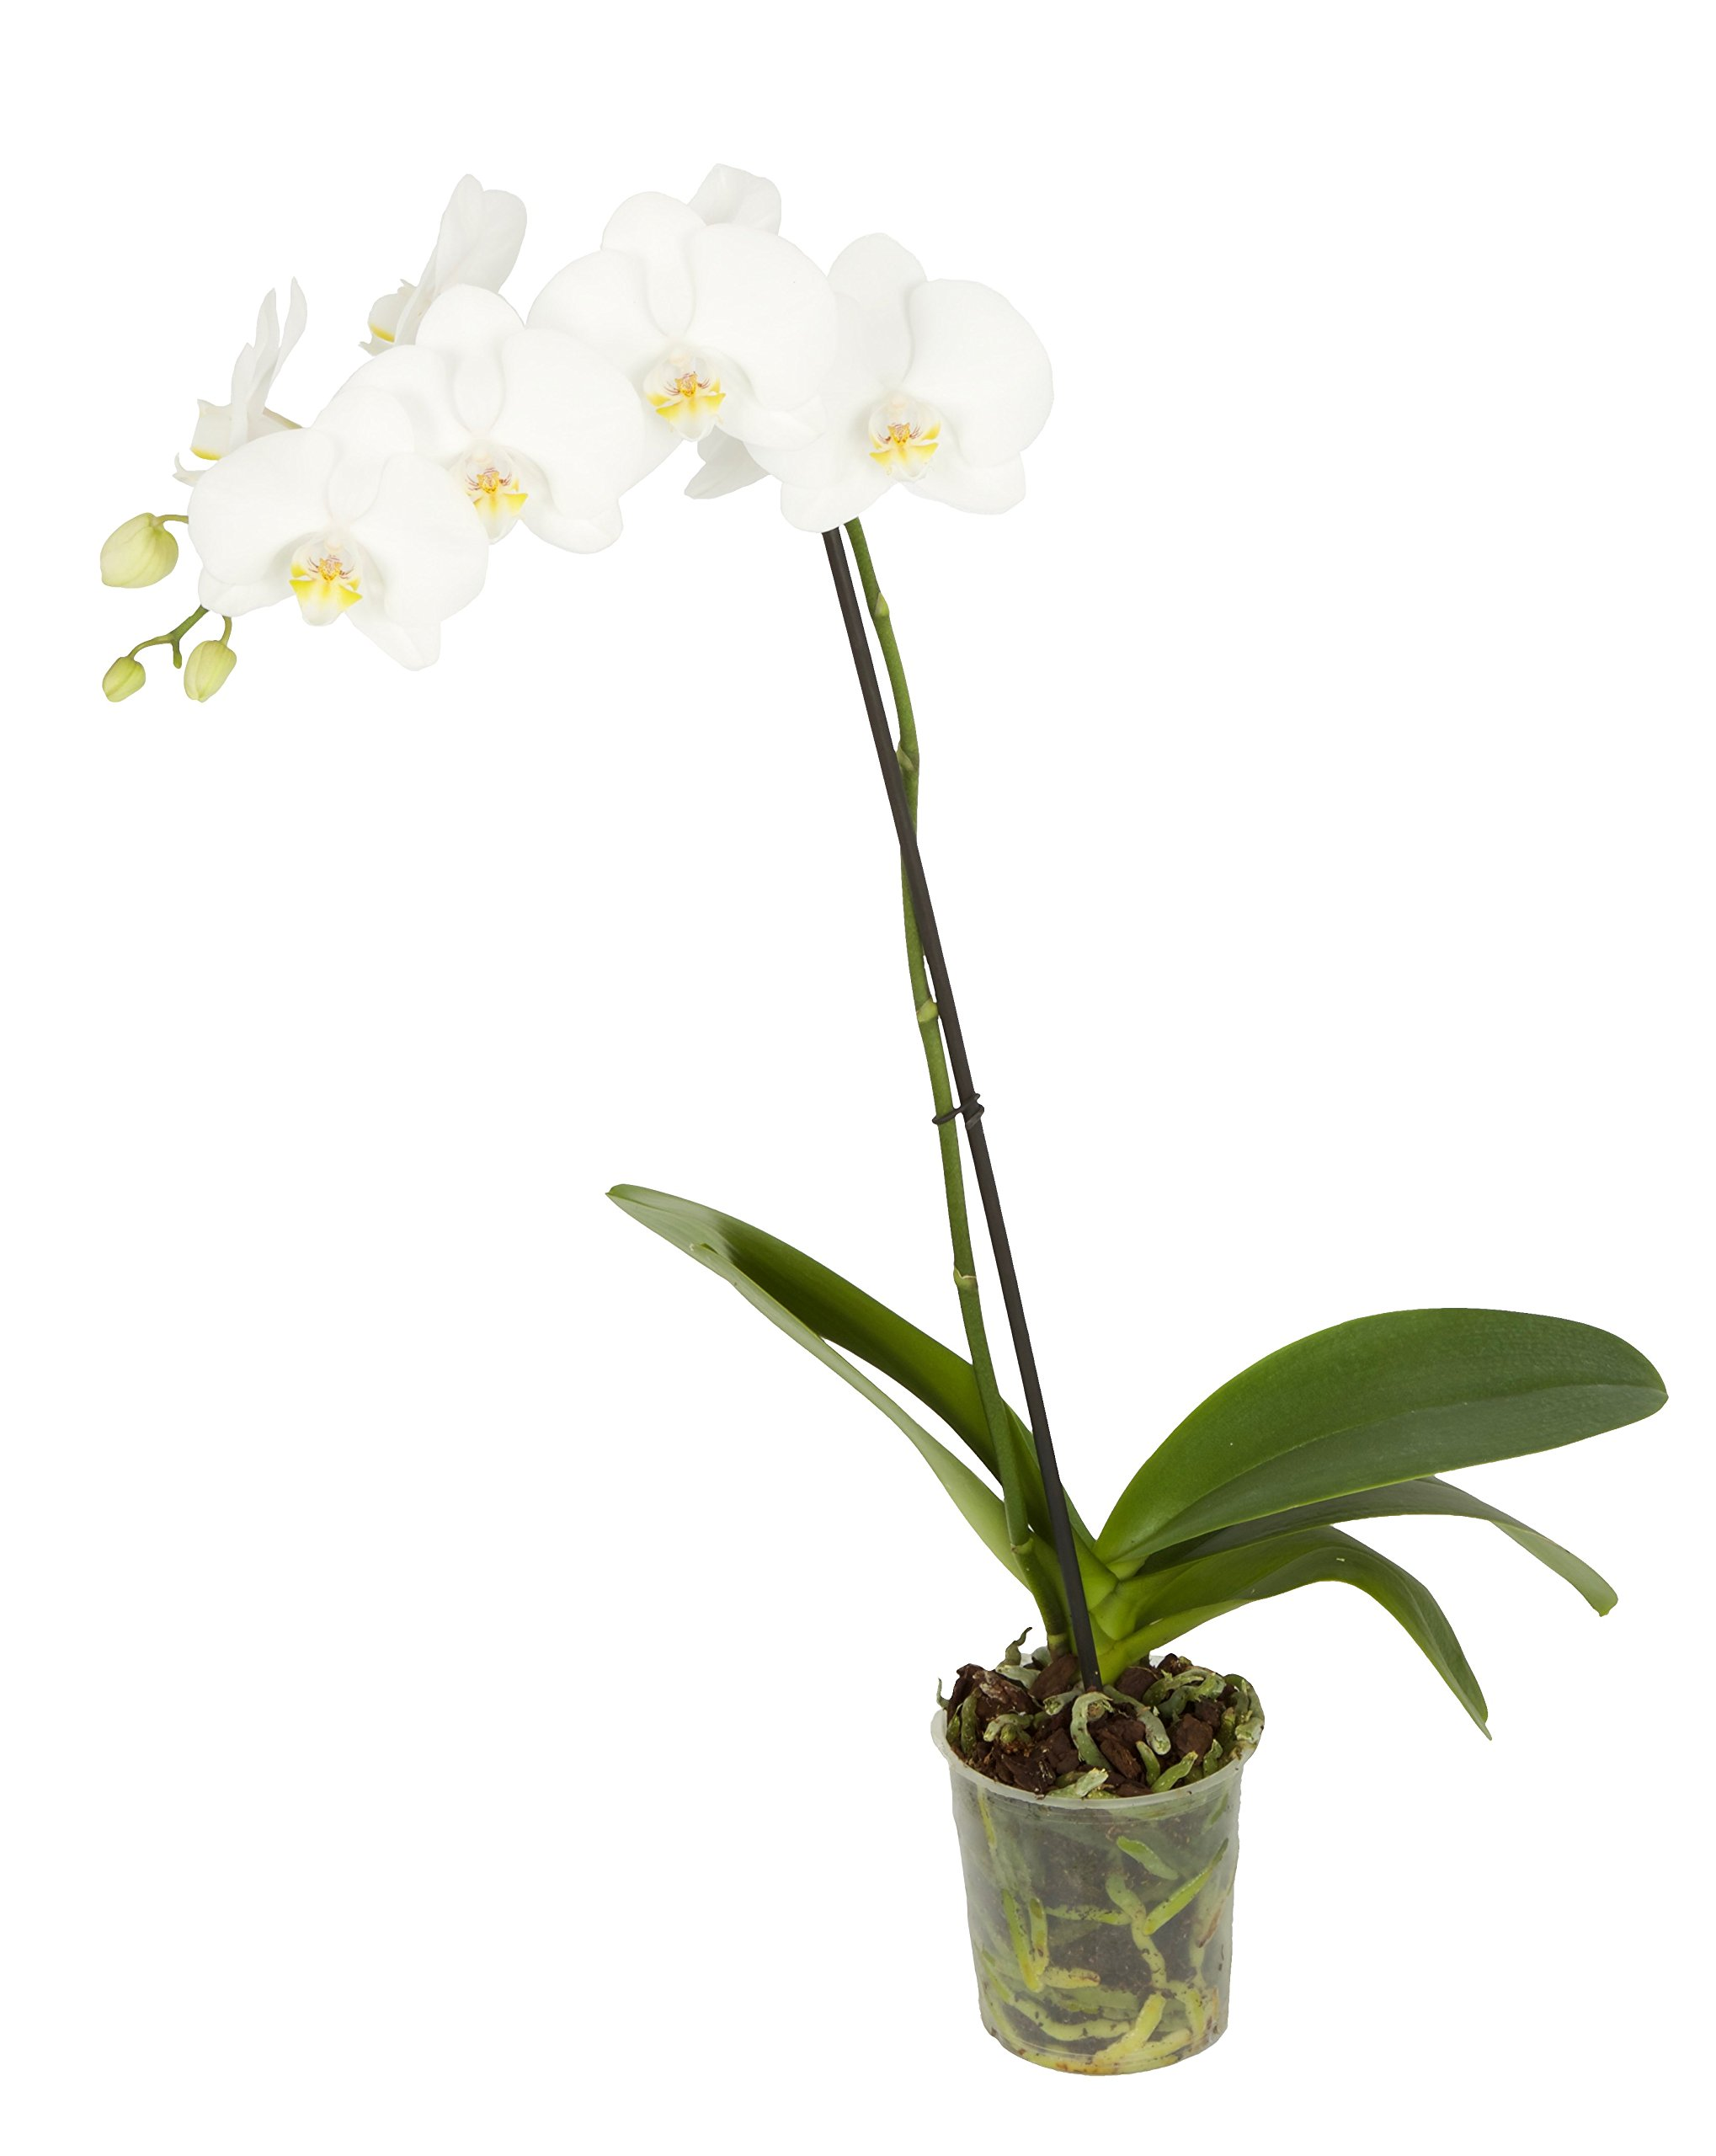 Color Orchids Live Blooming Single Stem Phalaenopsis Orchid Plant in Grow Pot, 20'' x 24'' Tall, White Blooms